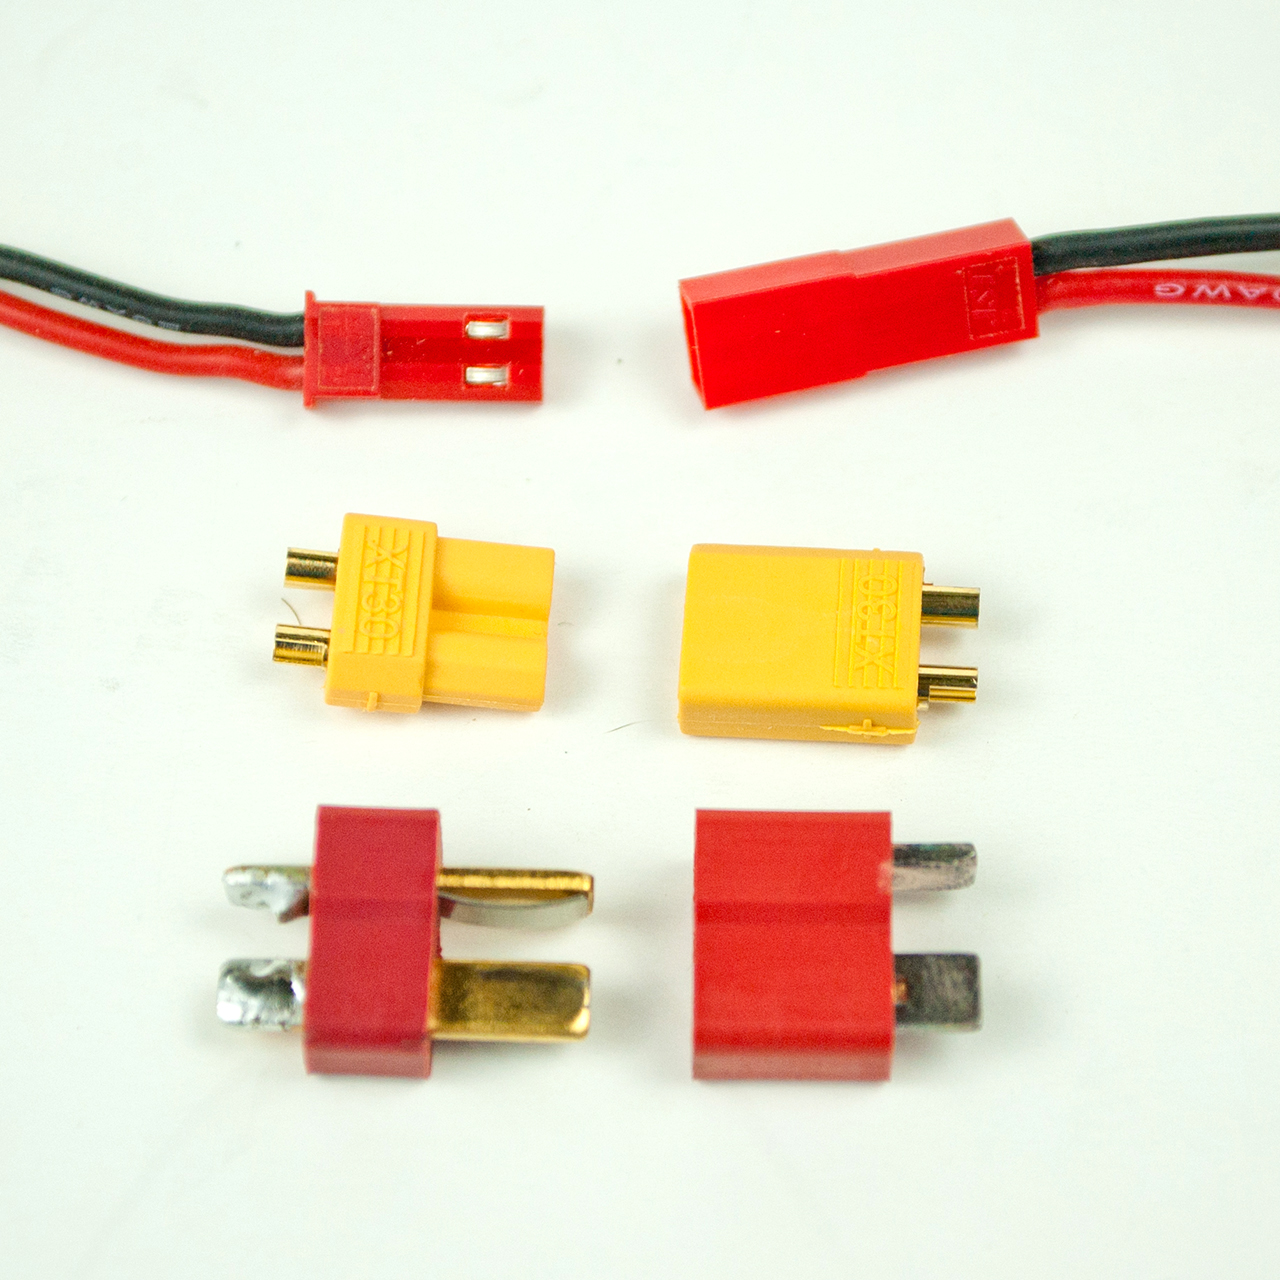 Testing Small Power Connectors For Hobby Rc Tested Automotive Wiring Harness Connectoramp Connector Terminal The Relative Sizes Of Jst Top Xt30 And Ultra Plug Also Reflect Their Handling Limits